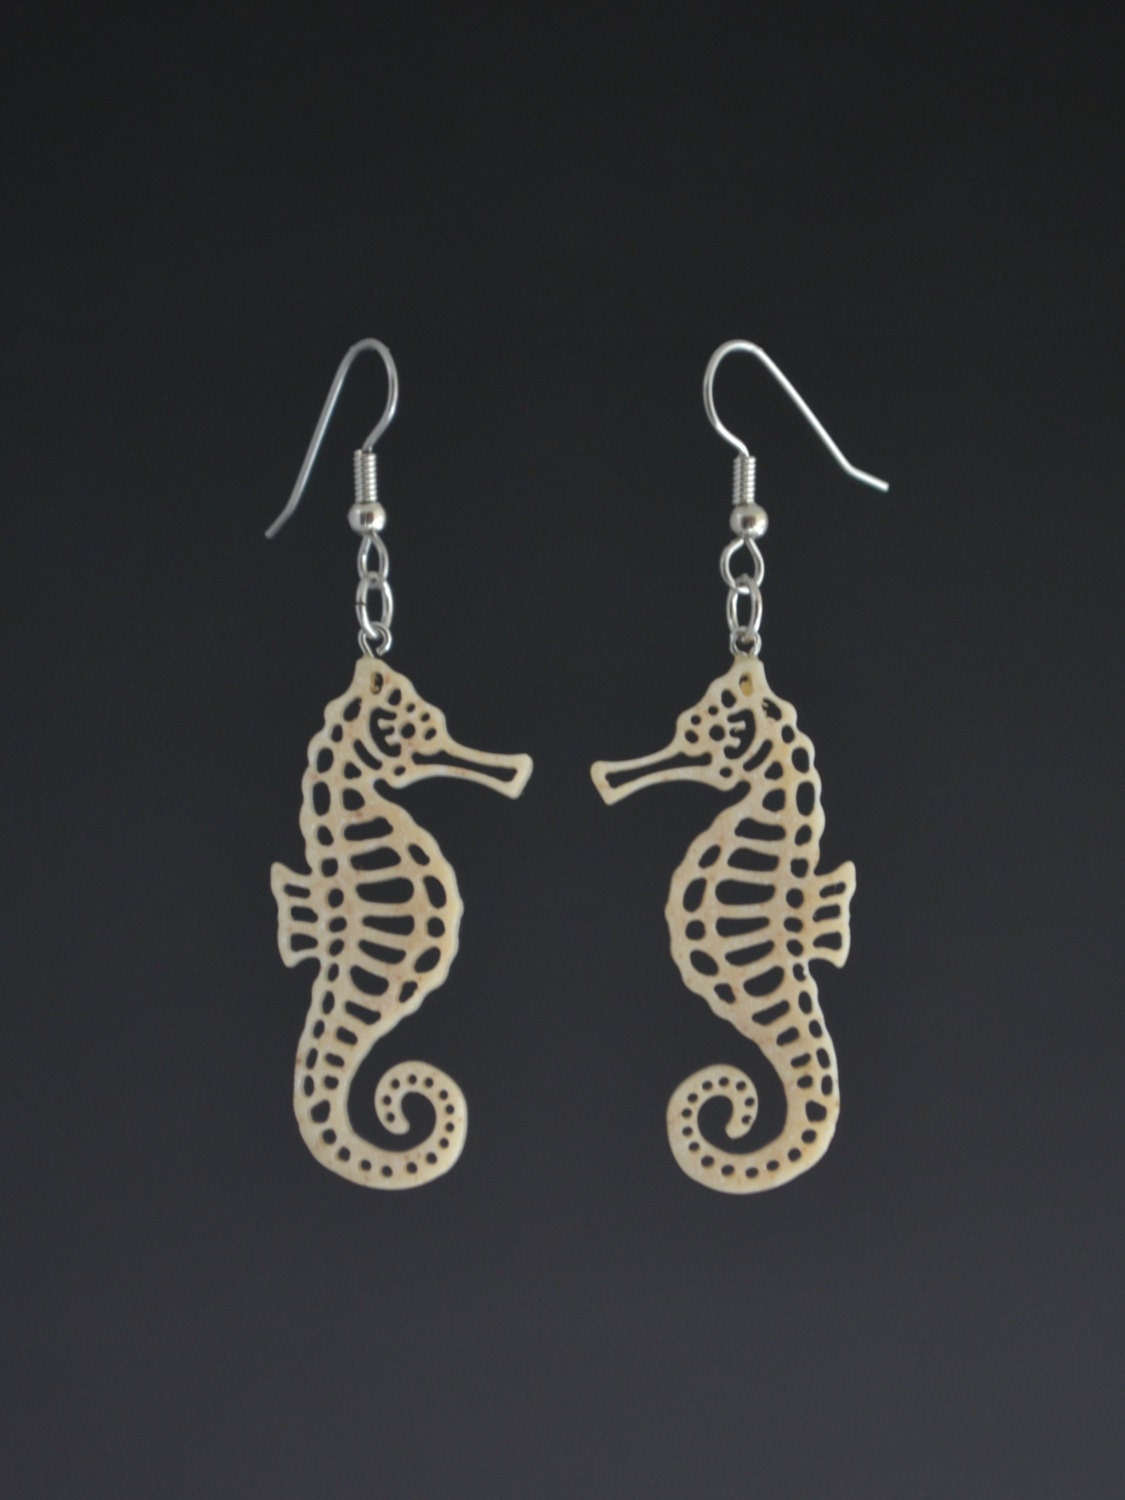 Seahorse earrings white pierced earrings upcycled corian for Local handmade jewelry near me